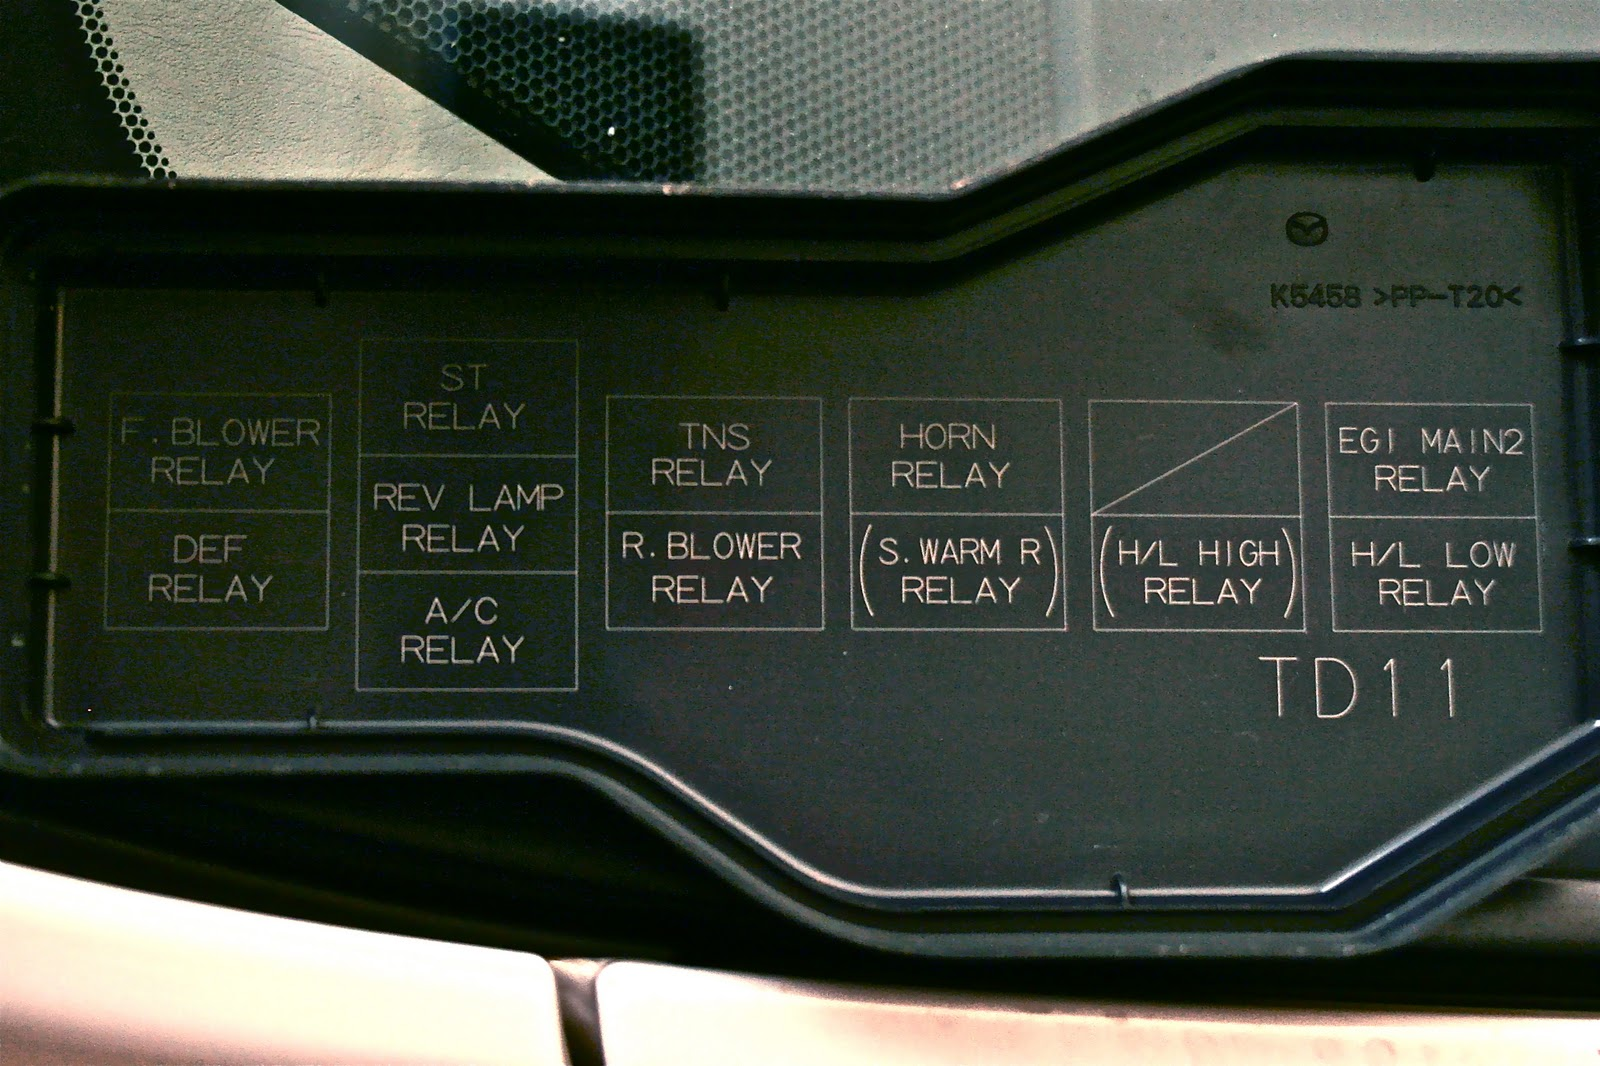 IMG_1634 just one point of view [justonepov com] mazda cx 9 blower motor 2008 mazda cx 9 fuse box diagram at creativeand.co